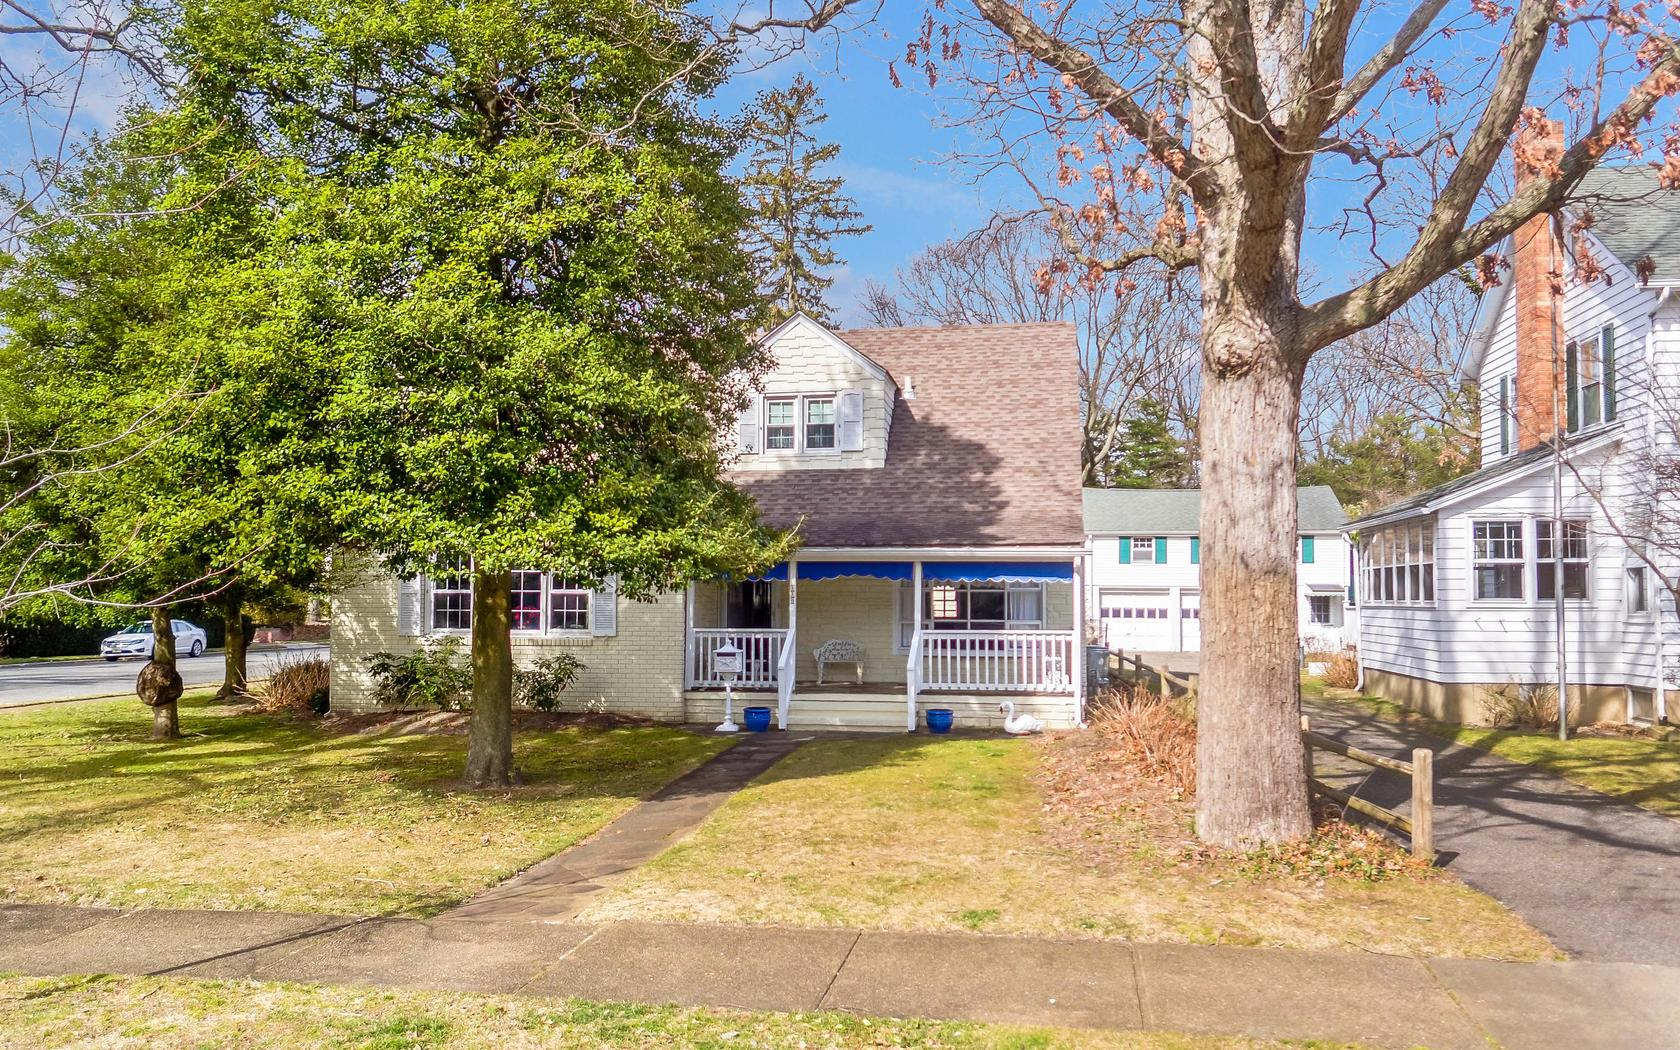 Single Family Home for Sale at Cape 110 Vroom Avenue Spring Lake, New Jersey 07762 United States